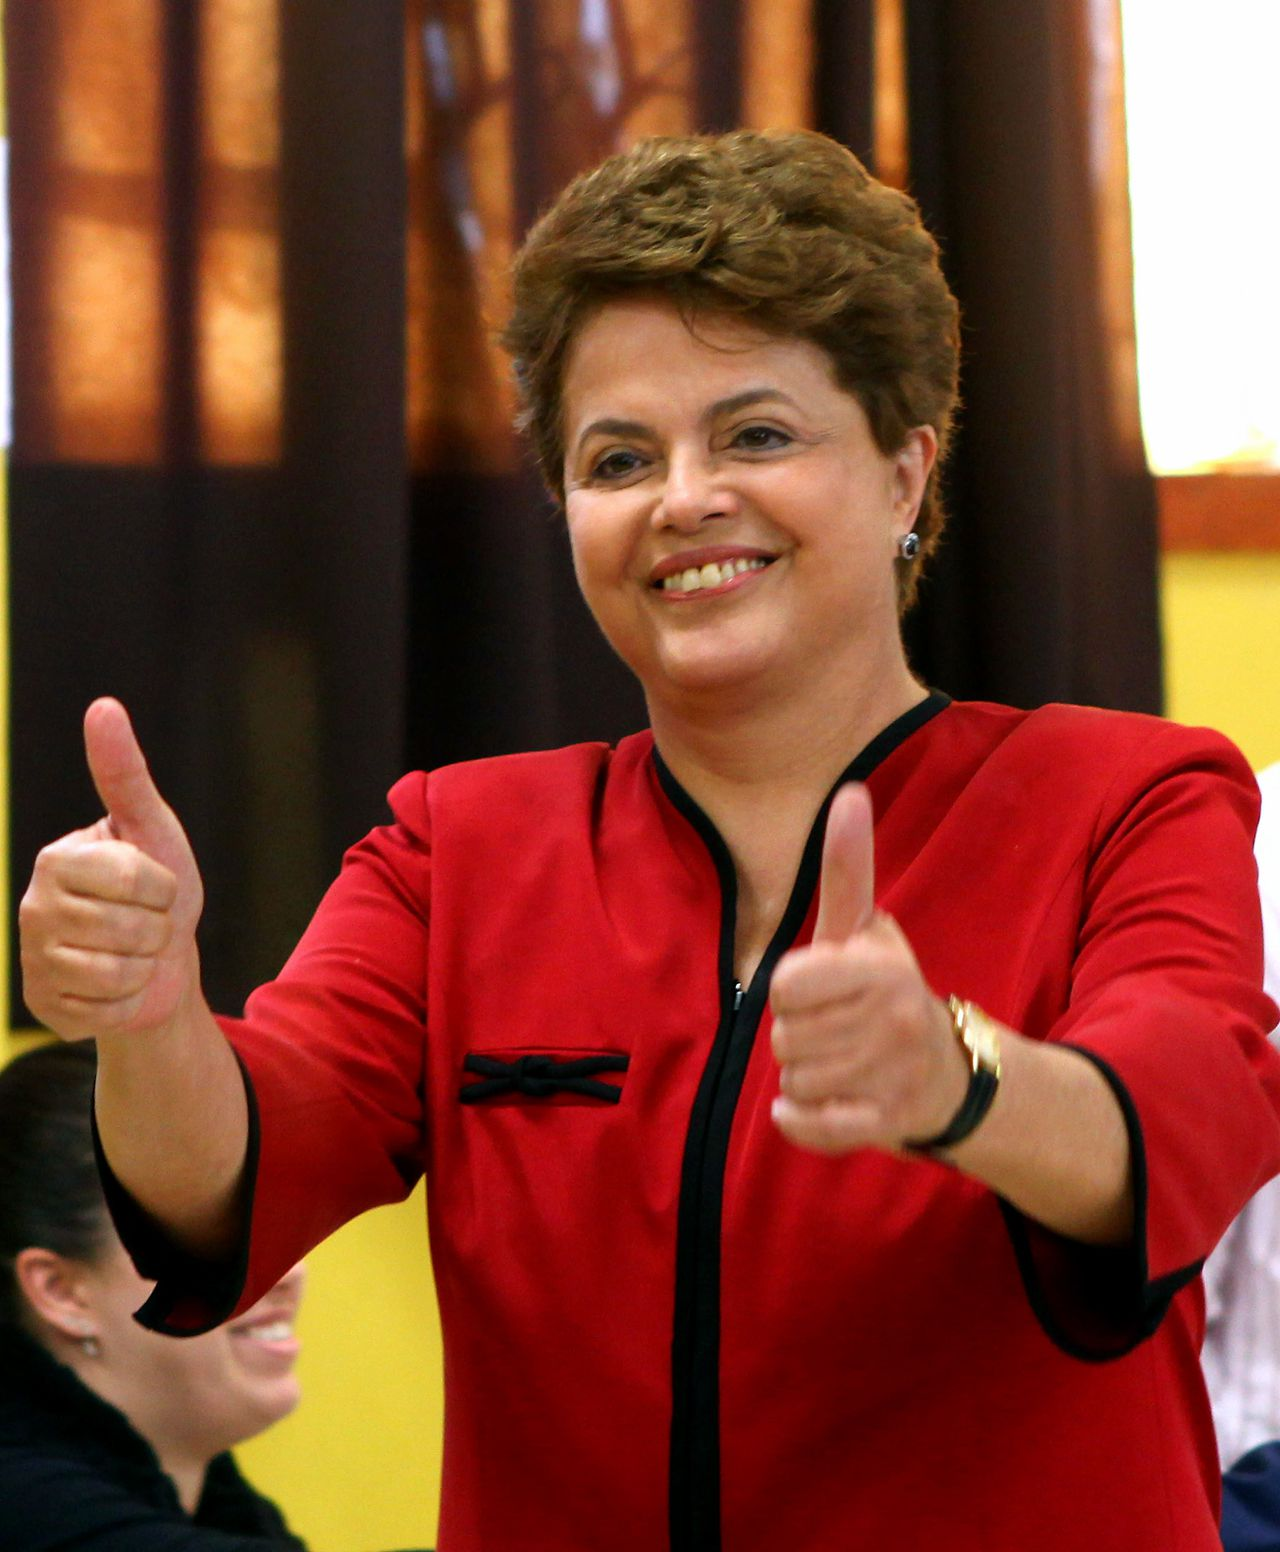 FILES - TO GO WITH AFP STORY - Brazilian presidential candidate for the ruling Workers Party (PT) Dilma Rousseff, gives her thumbs up after voting at a polling station in Porto Alegre, state of Rio Grande do Sul, Brazil, on October 31, 2010. Roussef, the first female President of Brazil, will have to impose a personal profile to the head of the country. AFP PHOTO/Jefferson BERNARDES